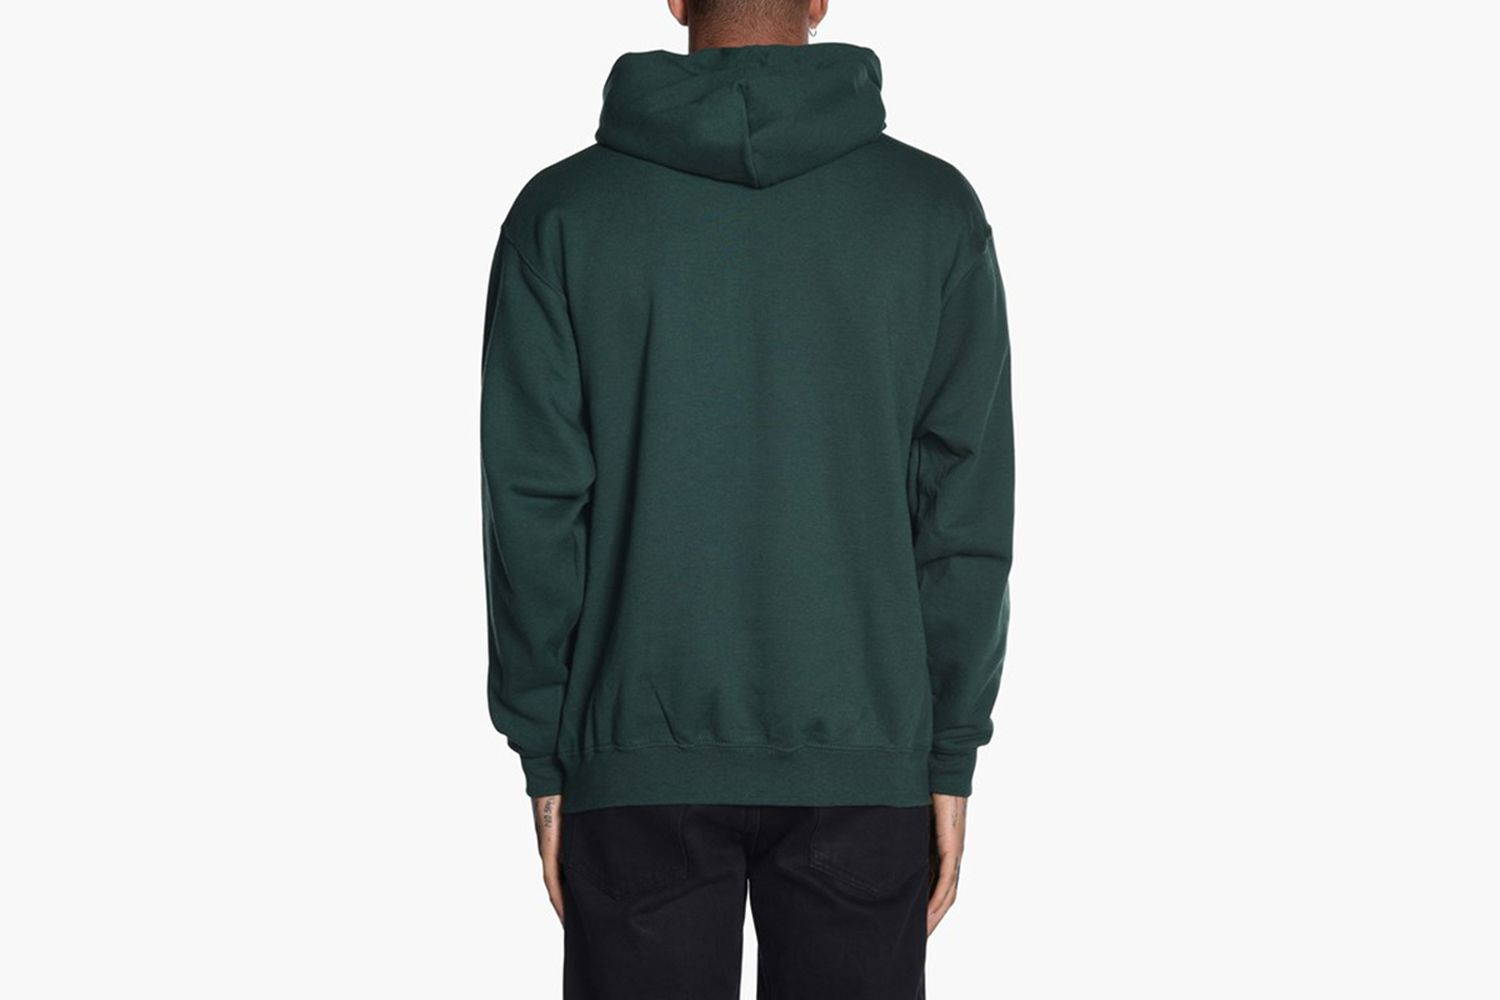 Asleep In The Alley Hoodie